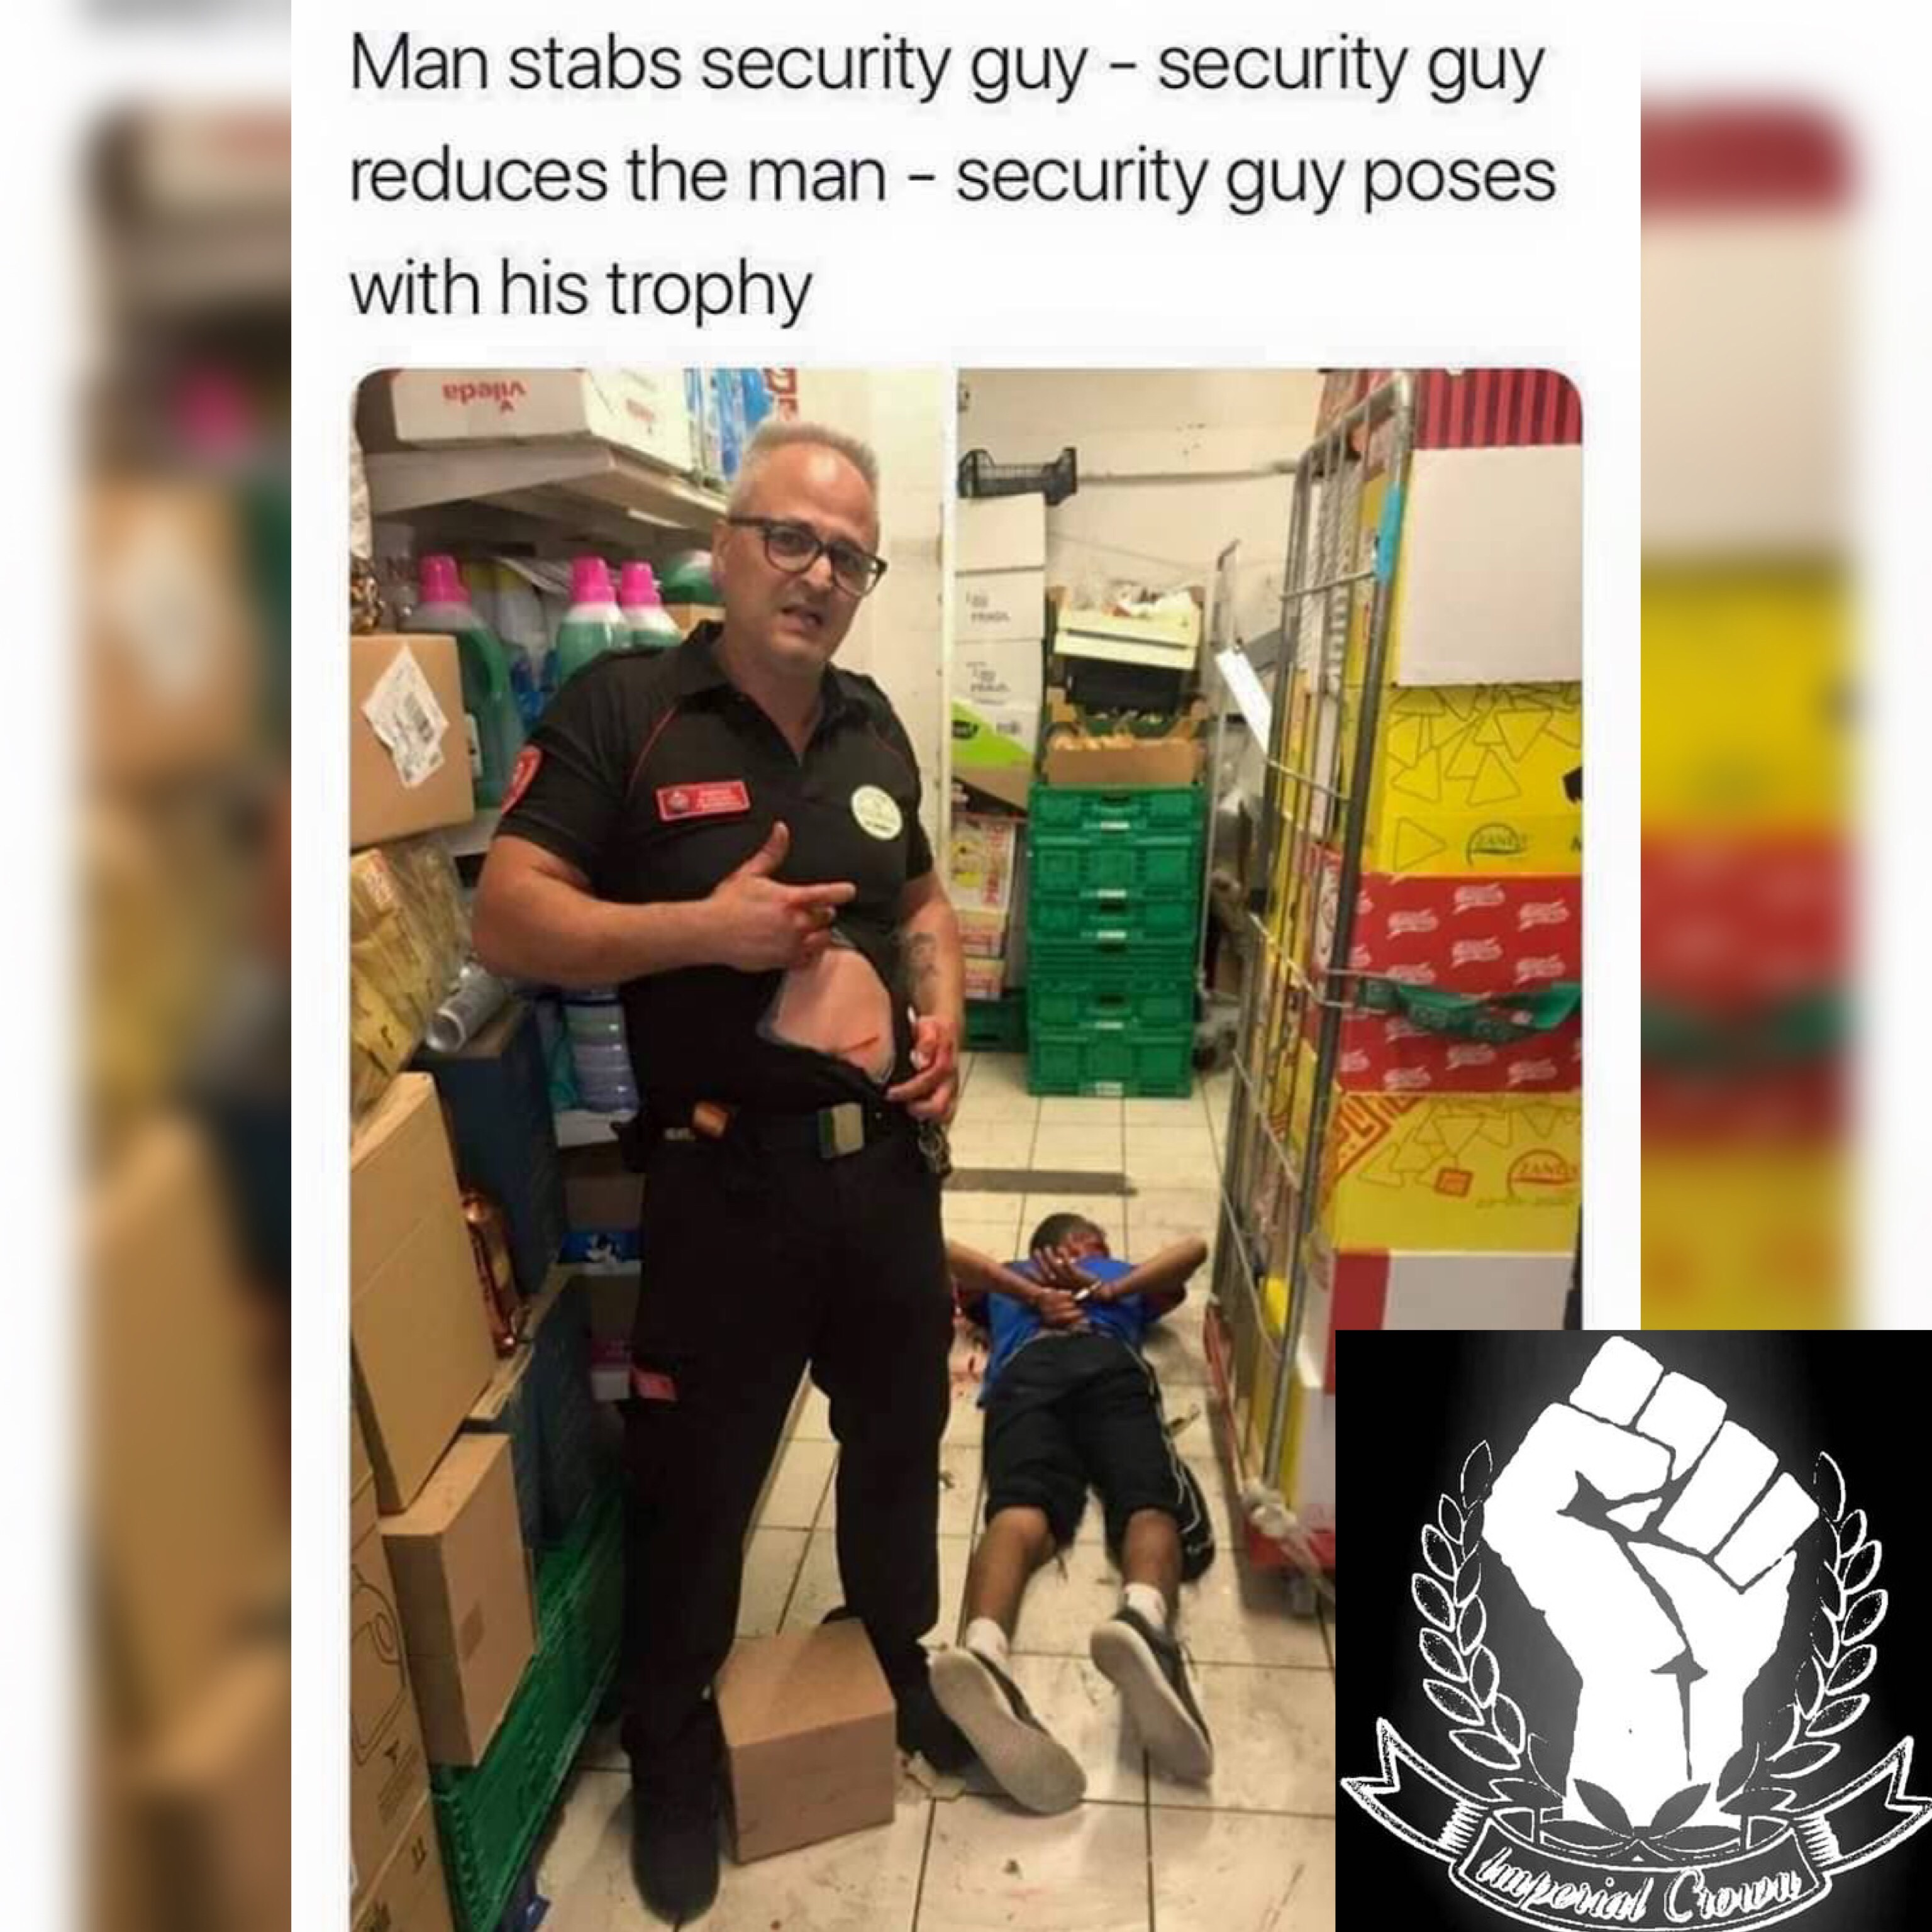 Man stabs security guy